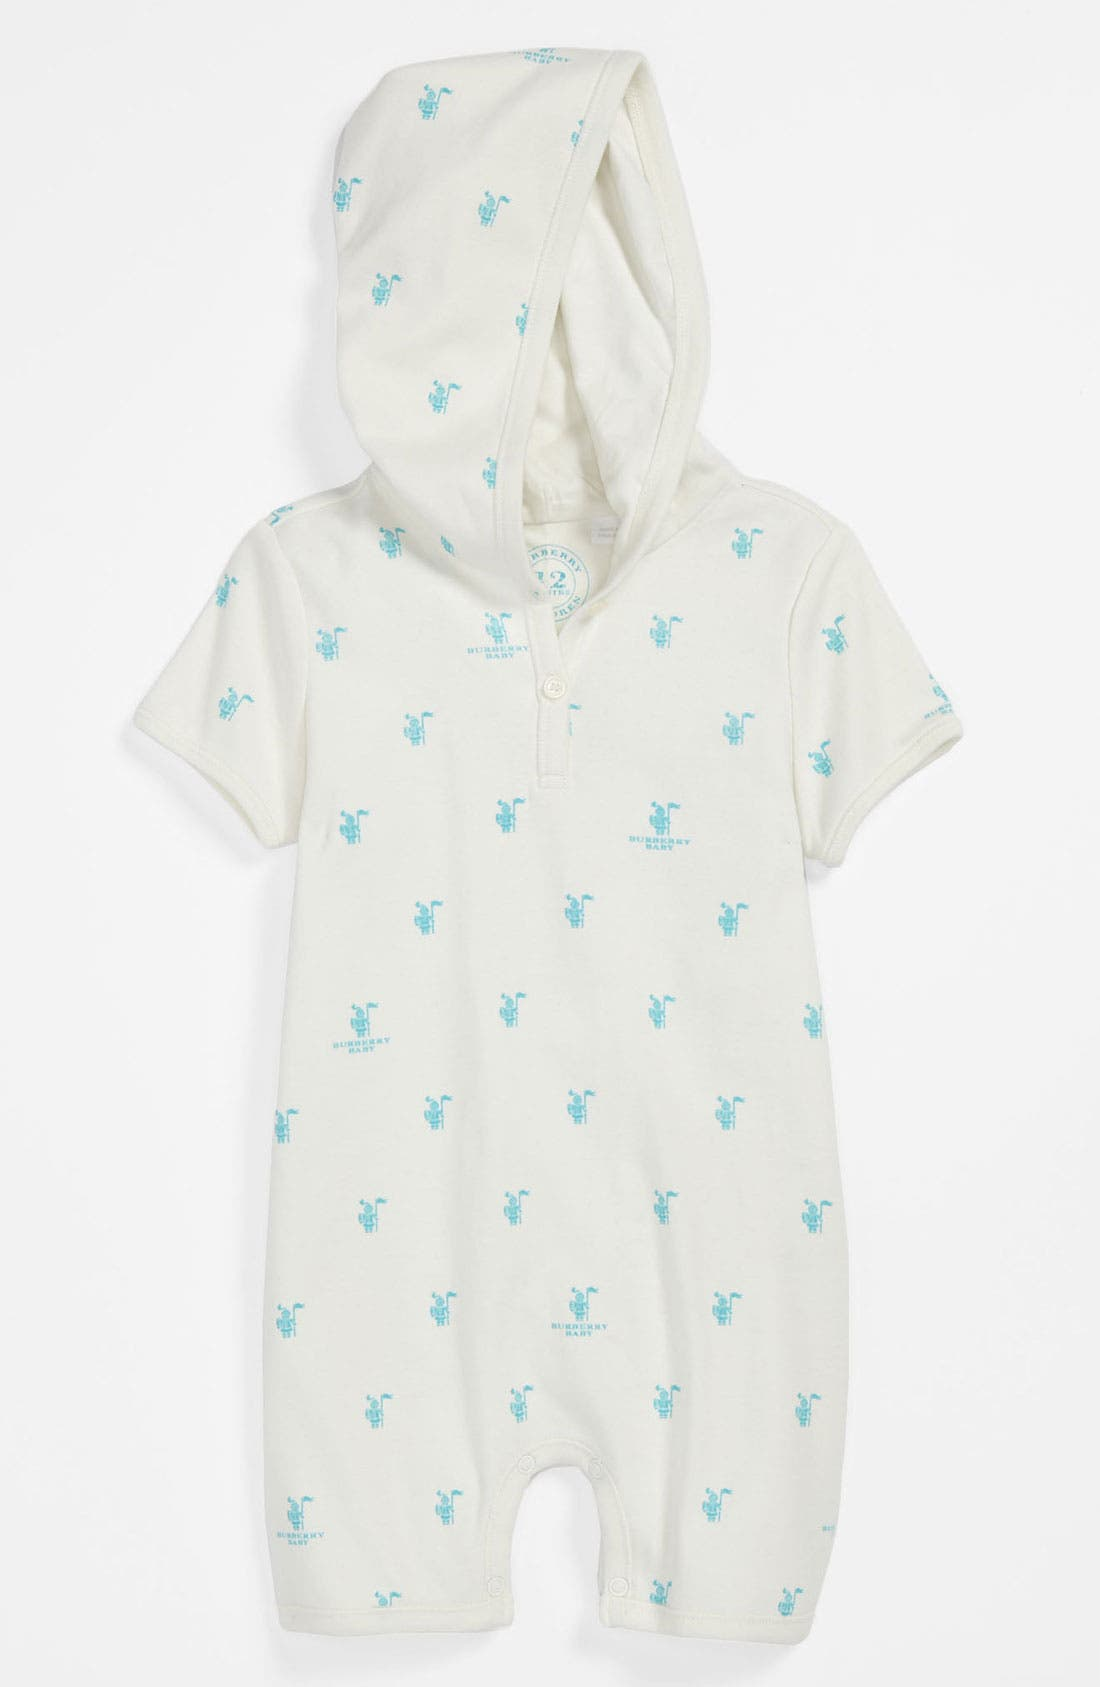 Main Image - Burberry 'Marlow' Romper (Baby)